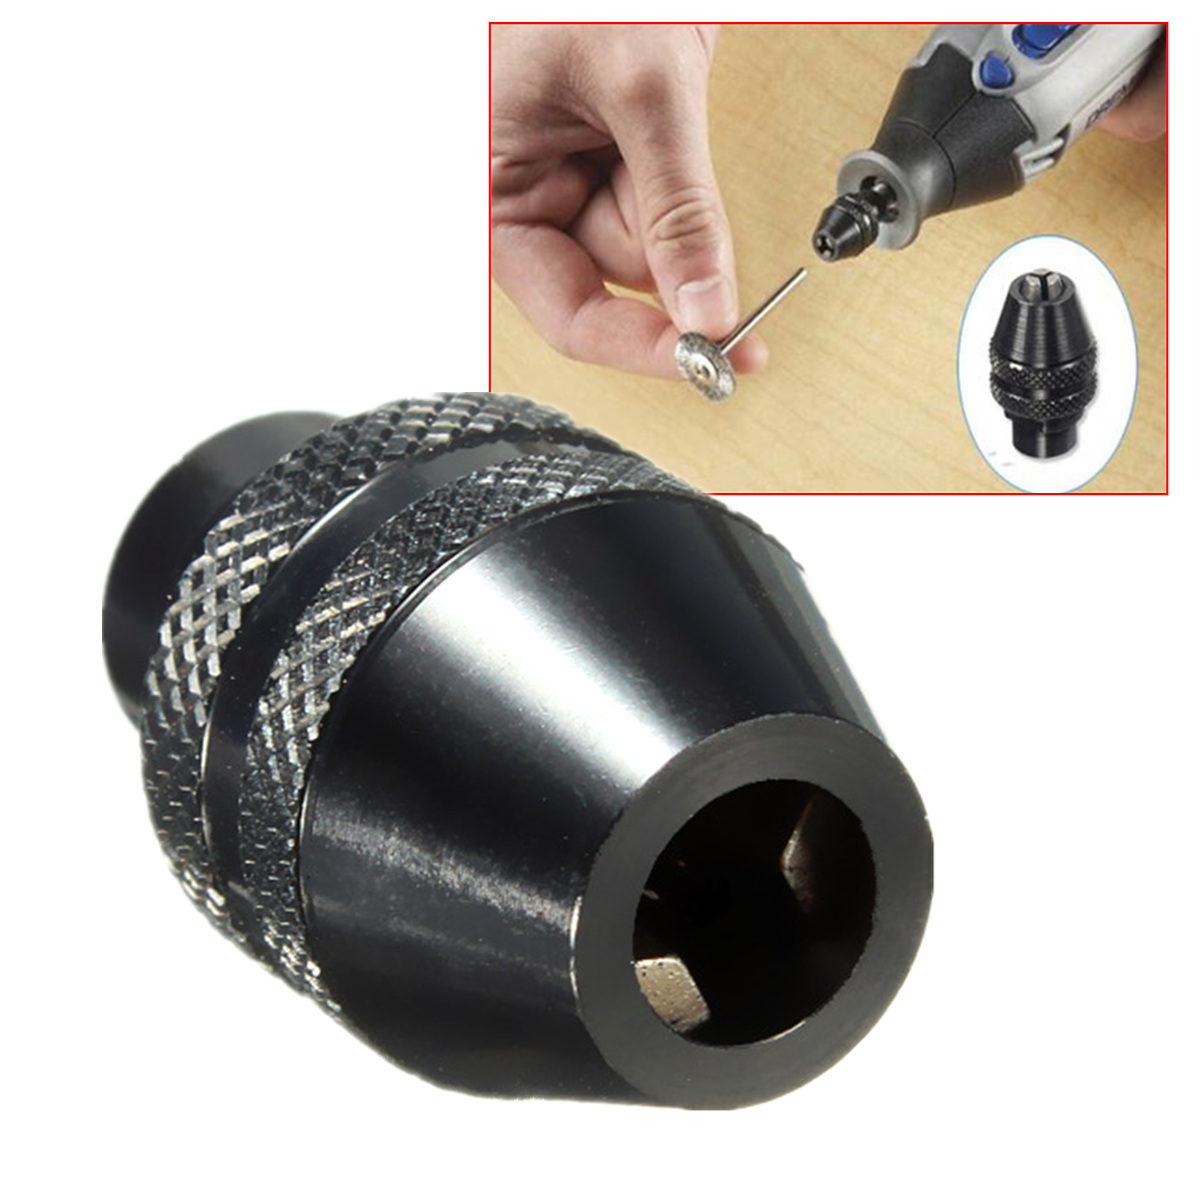 Mini Drill Keyless Chuck Multi Chuck Quick Change For Dremel For Rotary Tool For 4486 200 300 3000 4000 7700 8200